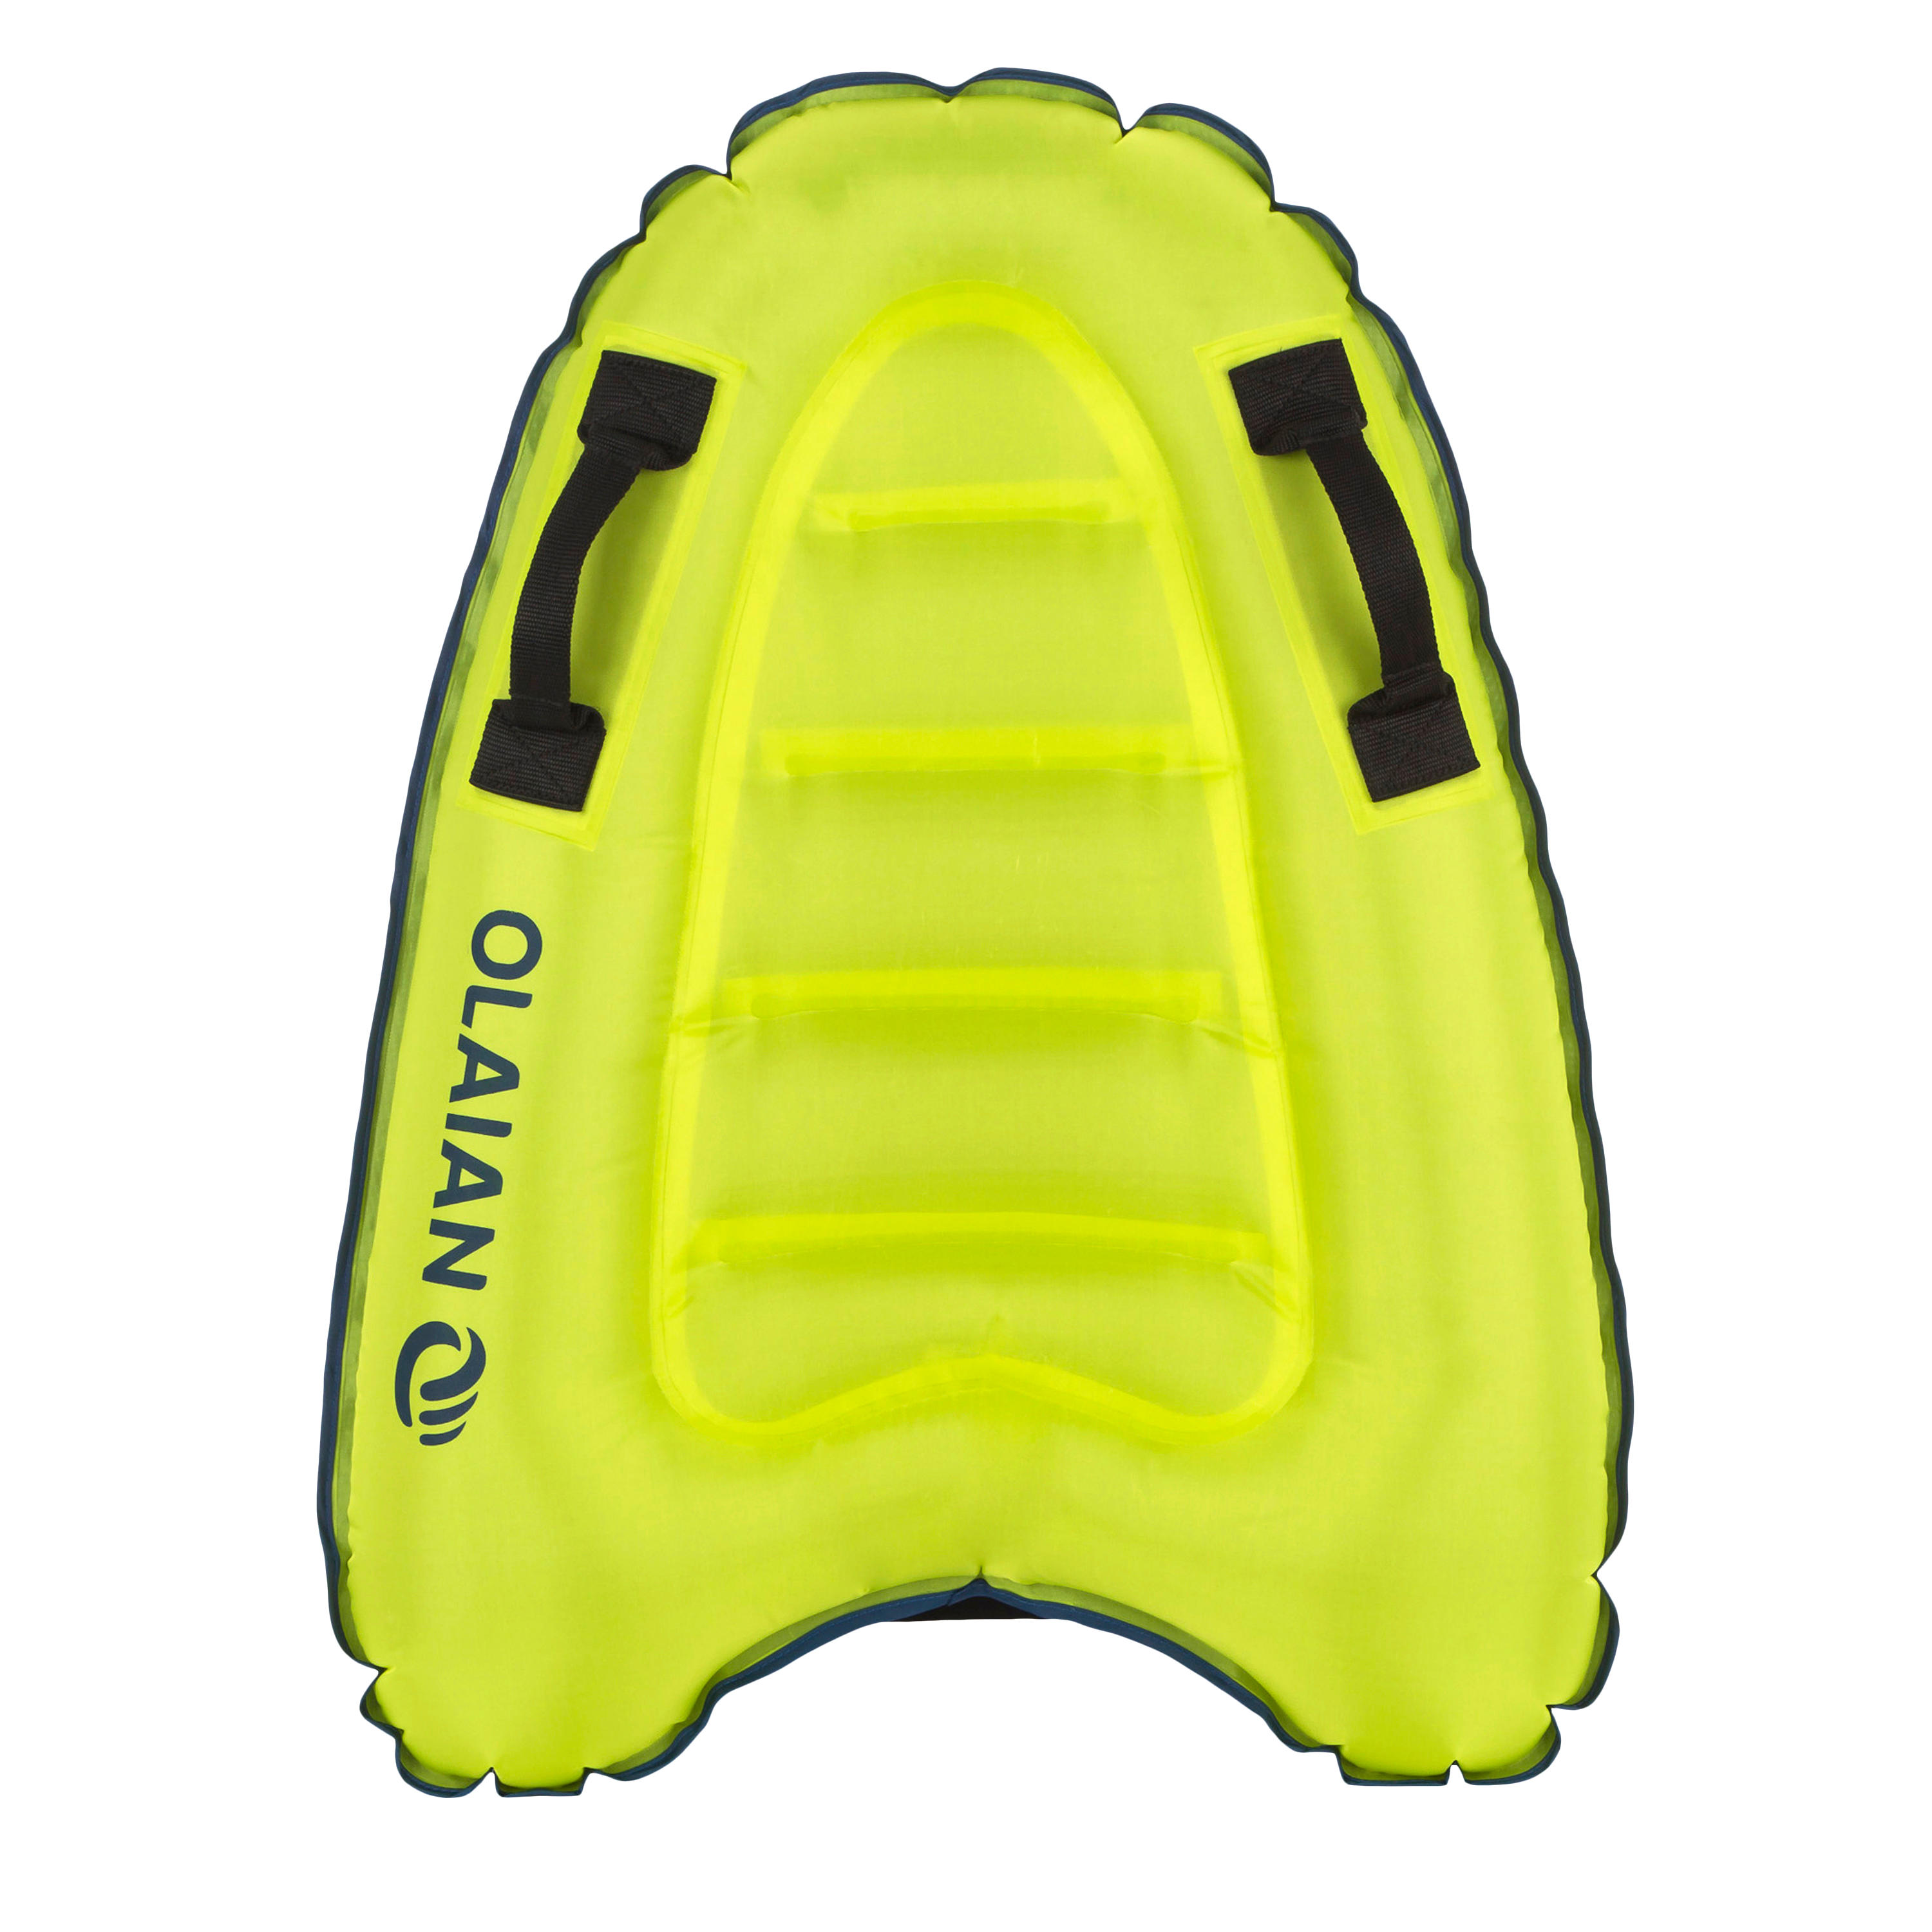 Discovery Kids' Inflatable Bodyboard with Handles - Green